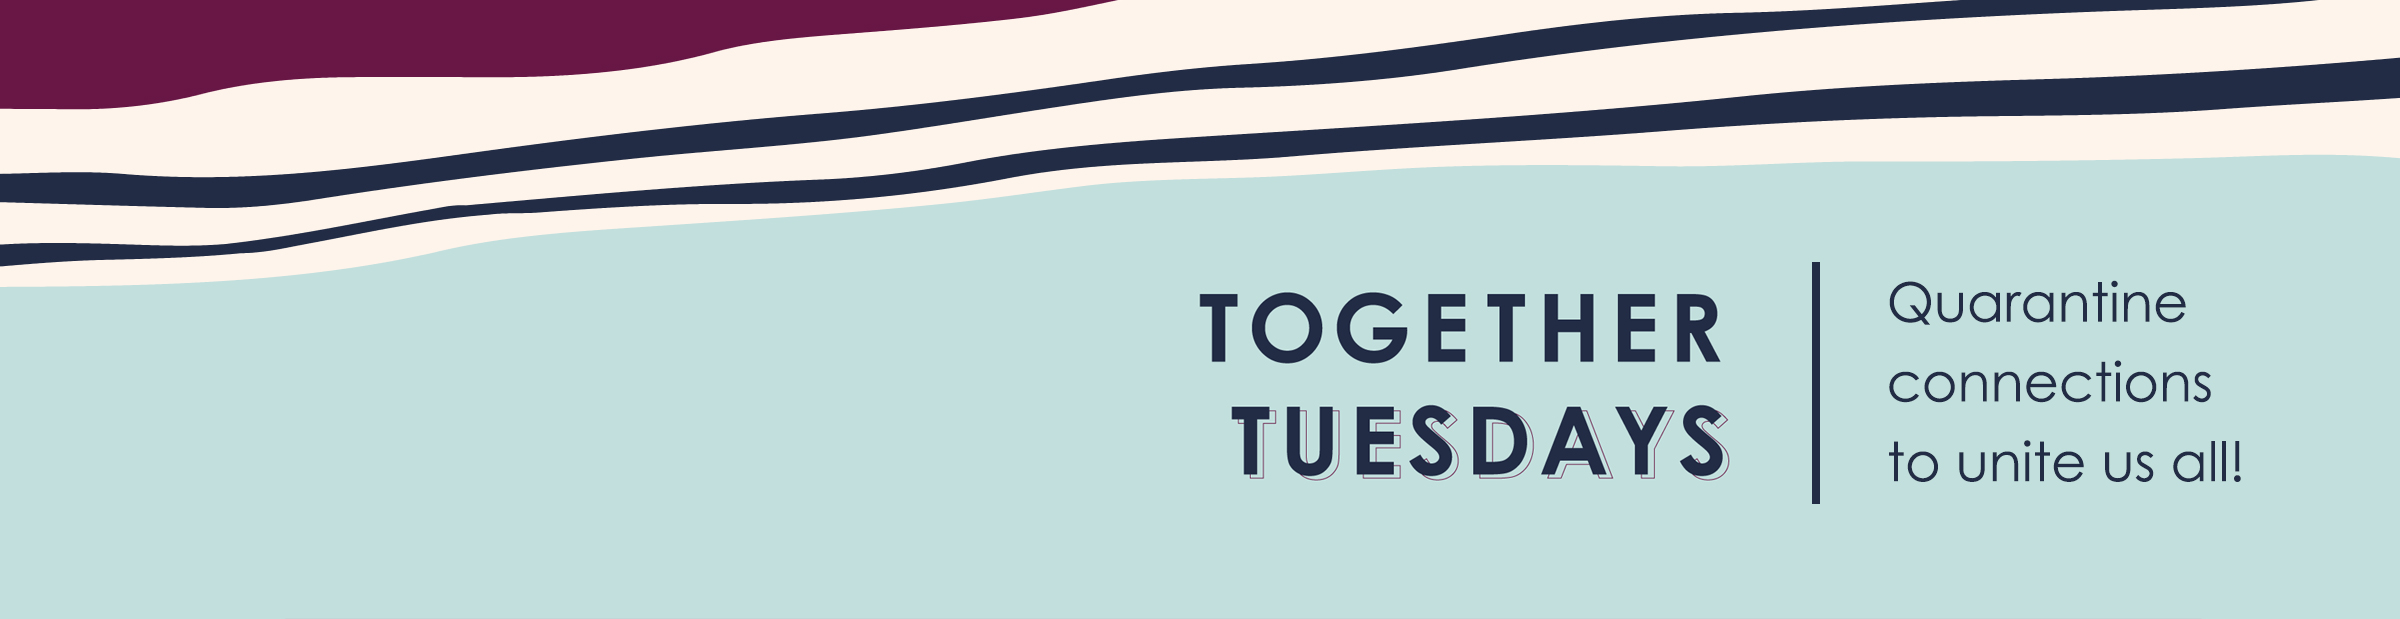 Together Tuesdays Banner